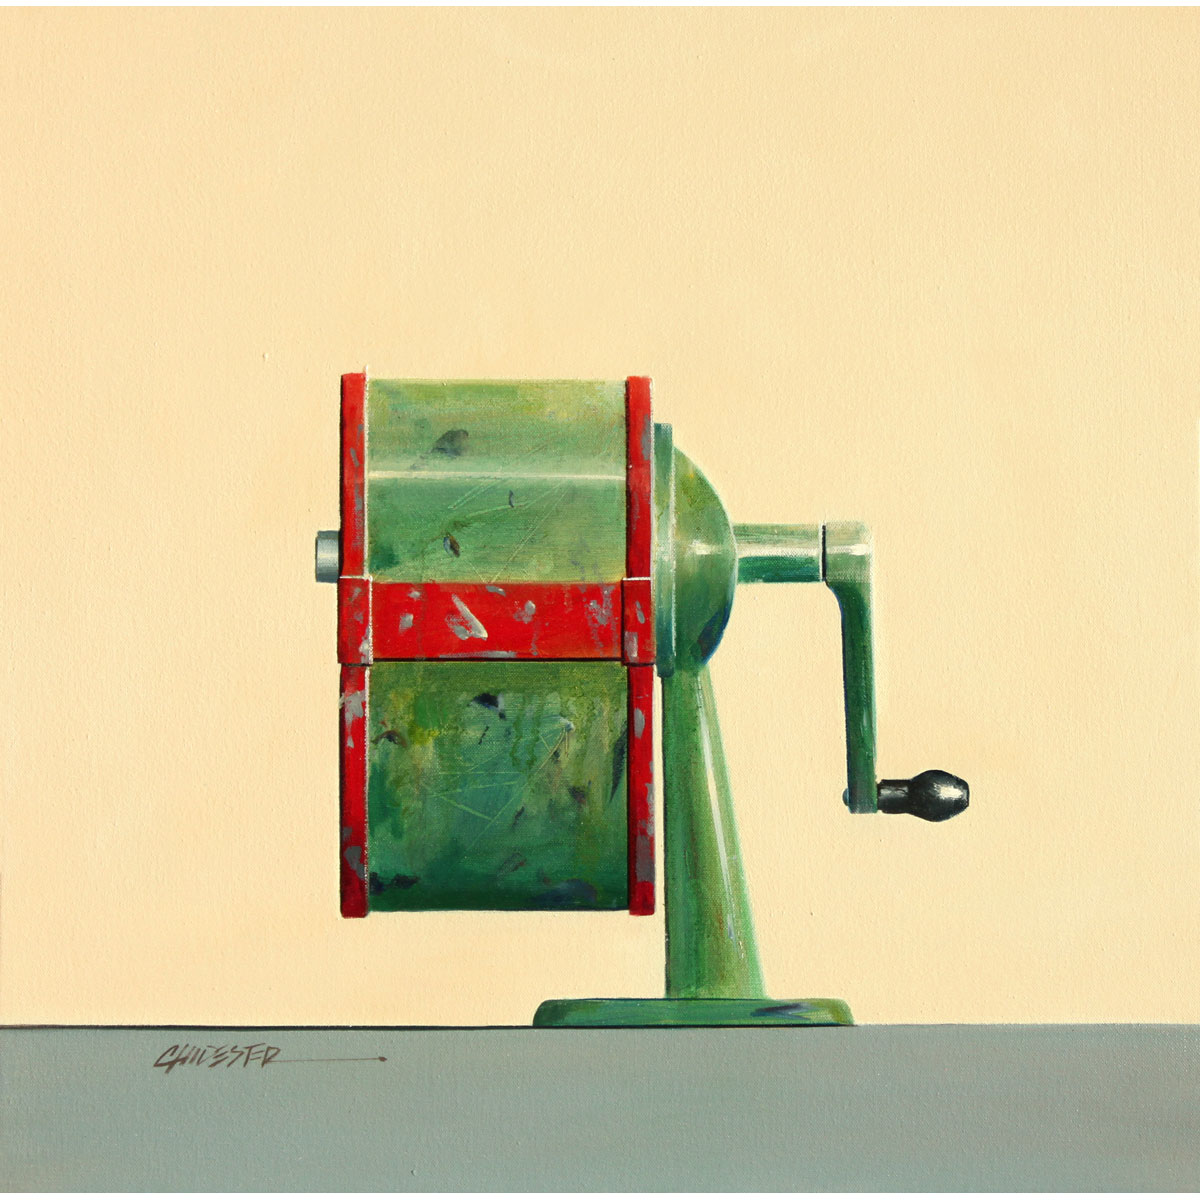 Pencil Sharpener by Wendy Chidester